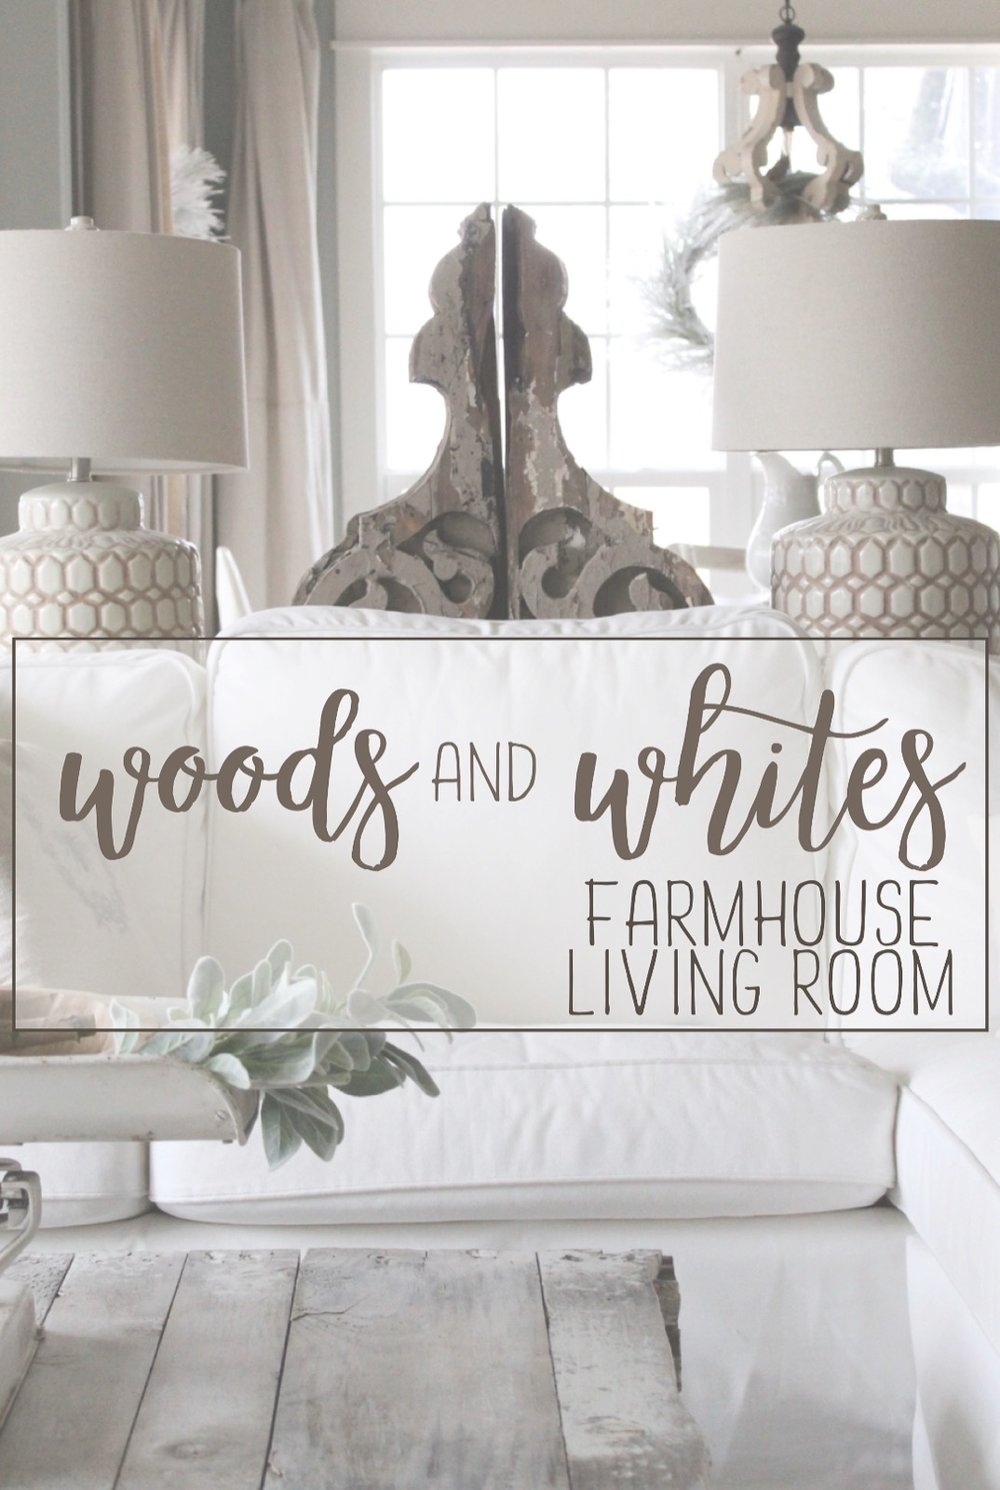 Cotton Stem Blog Woods And Whites Farmhouse Living Room Tour.JPG